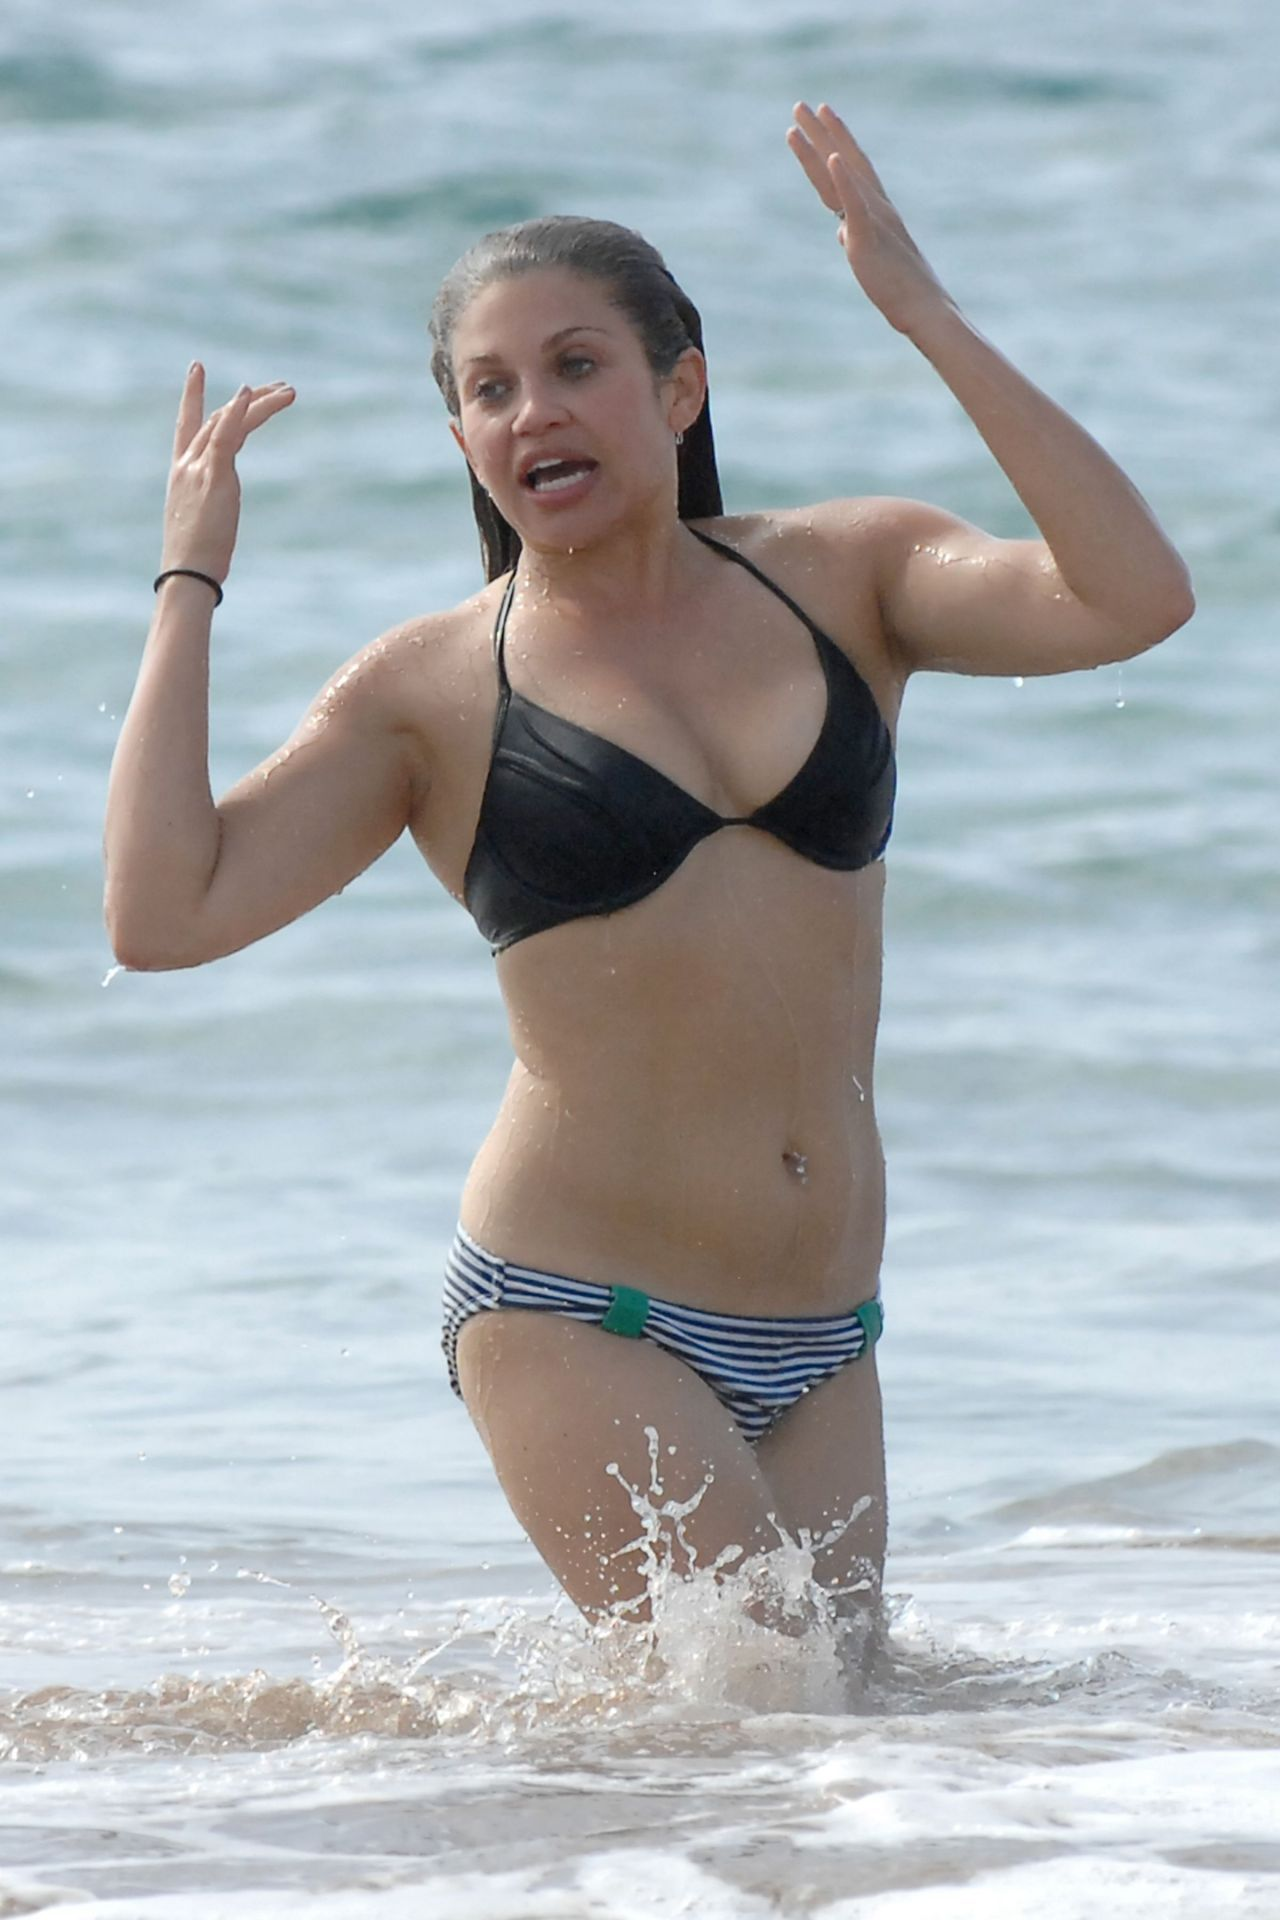 Boy meets world danielle fishel bikini